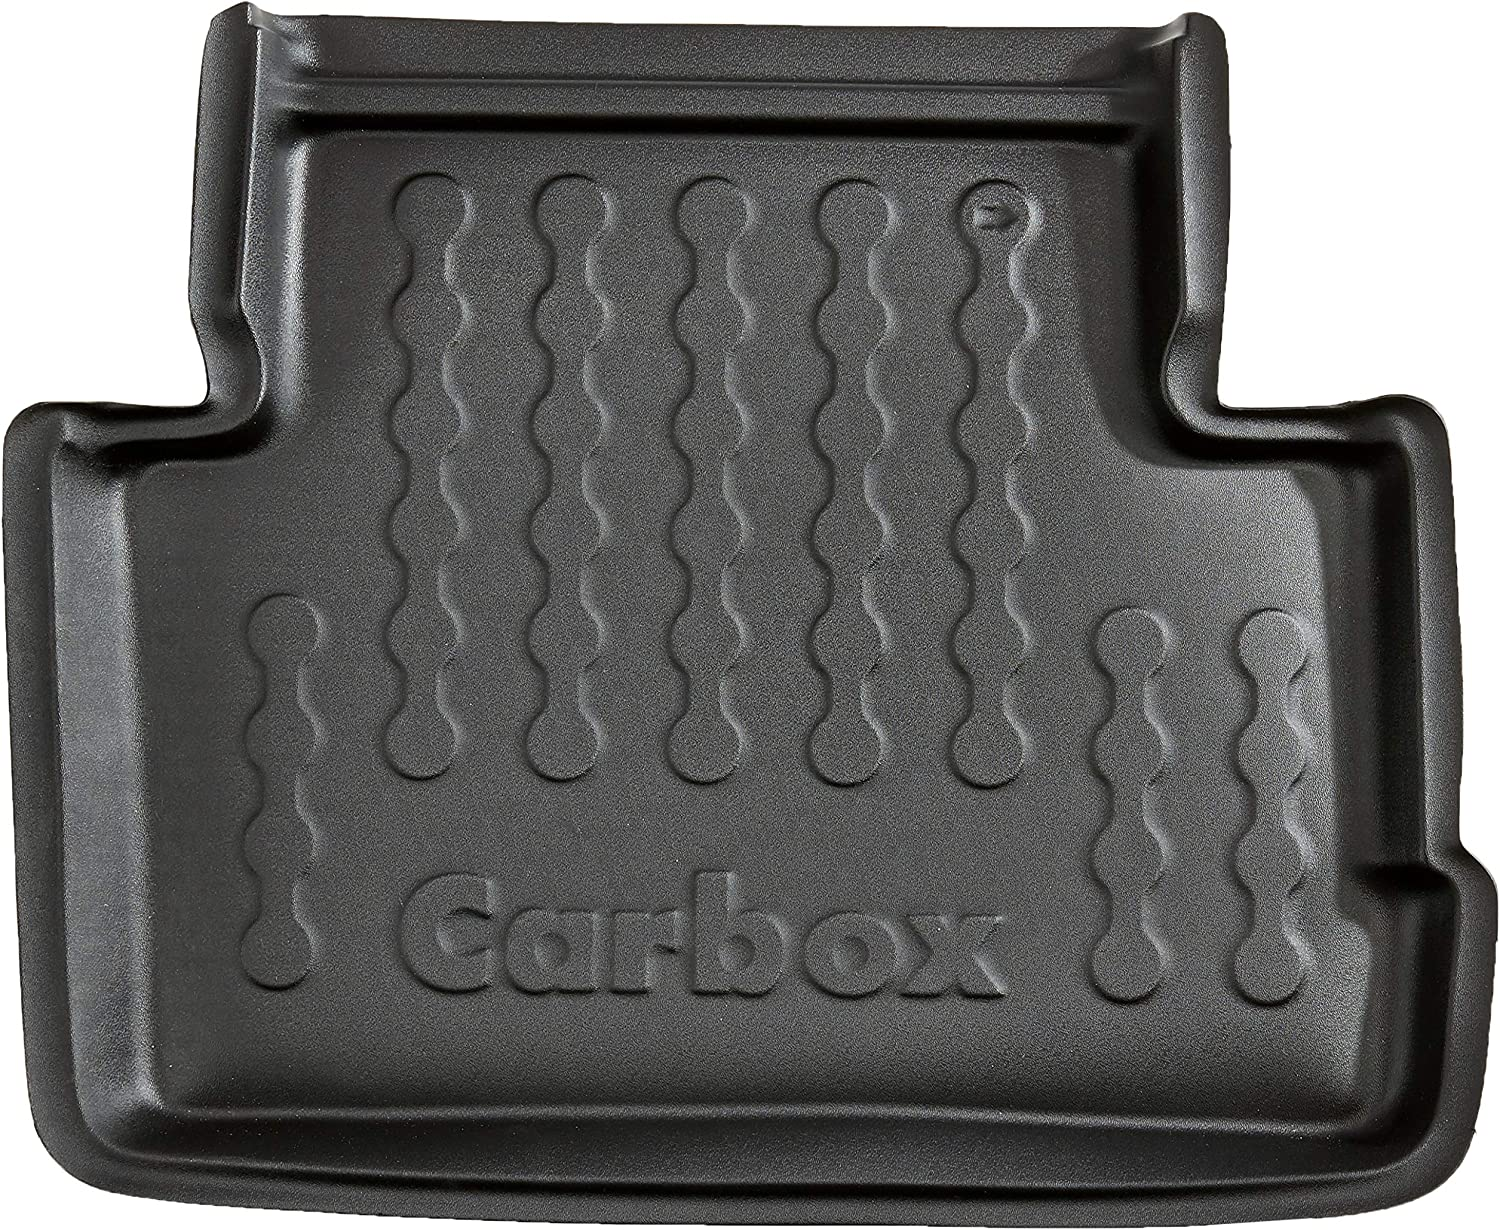 CARBOX 437112000 Boot Tray